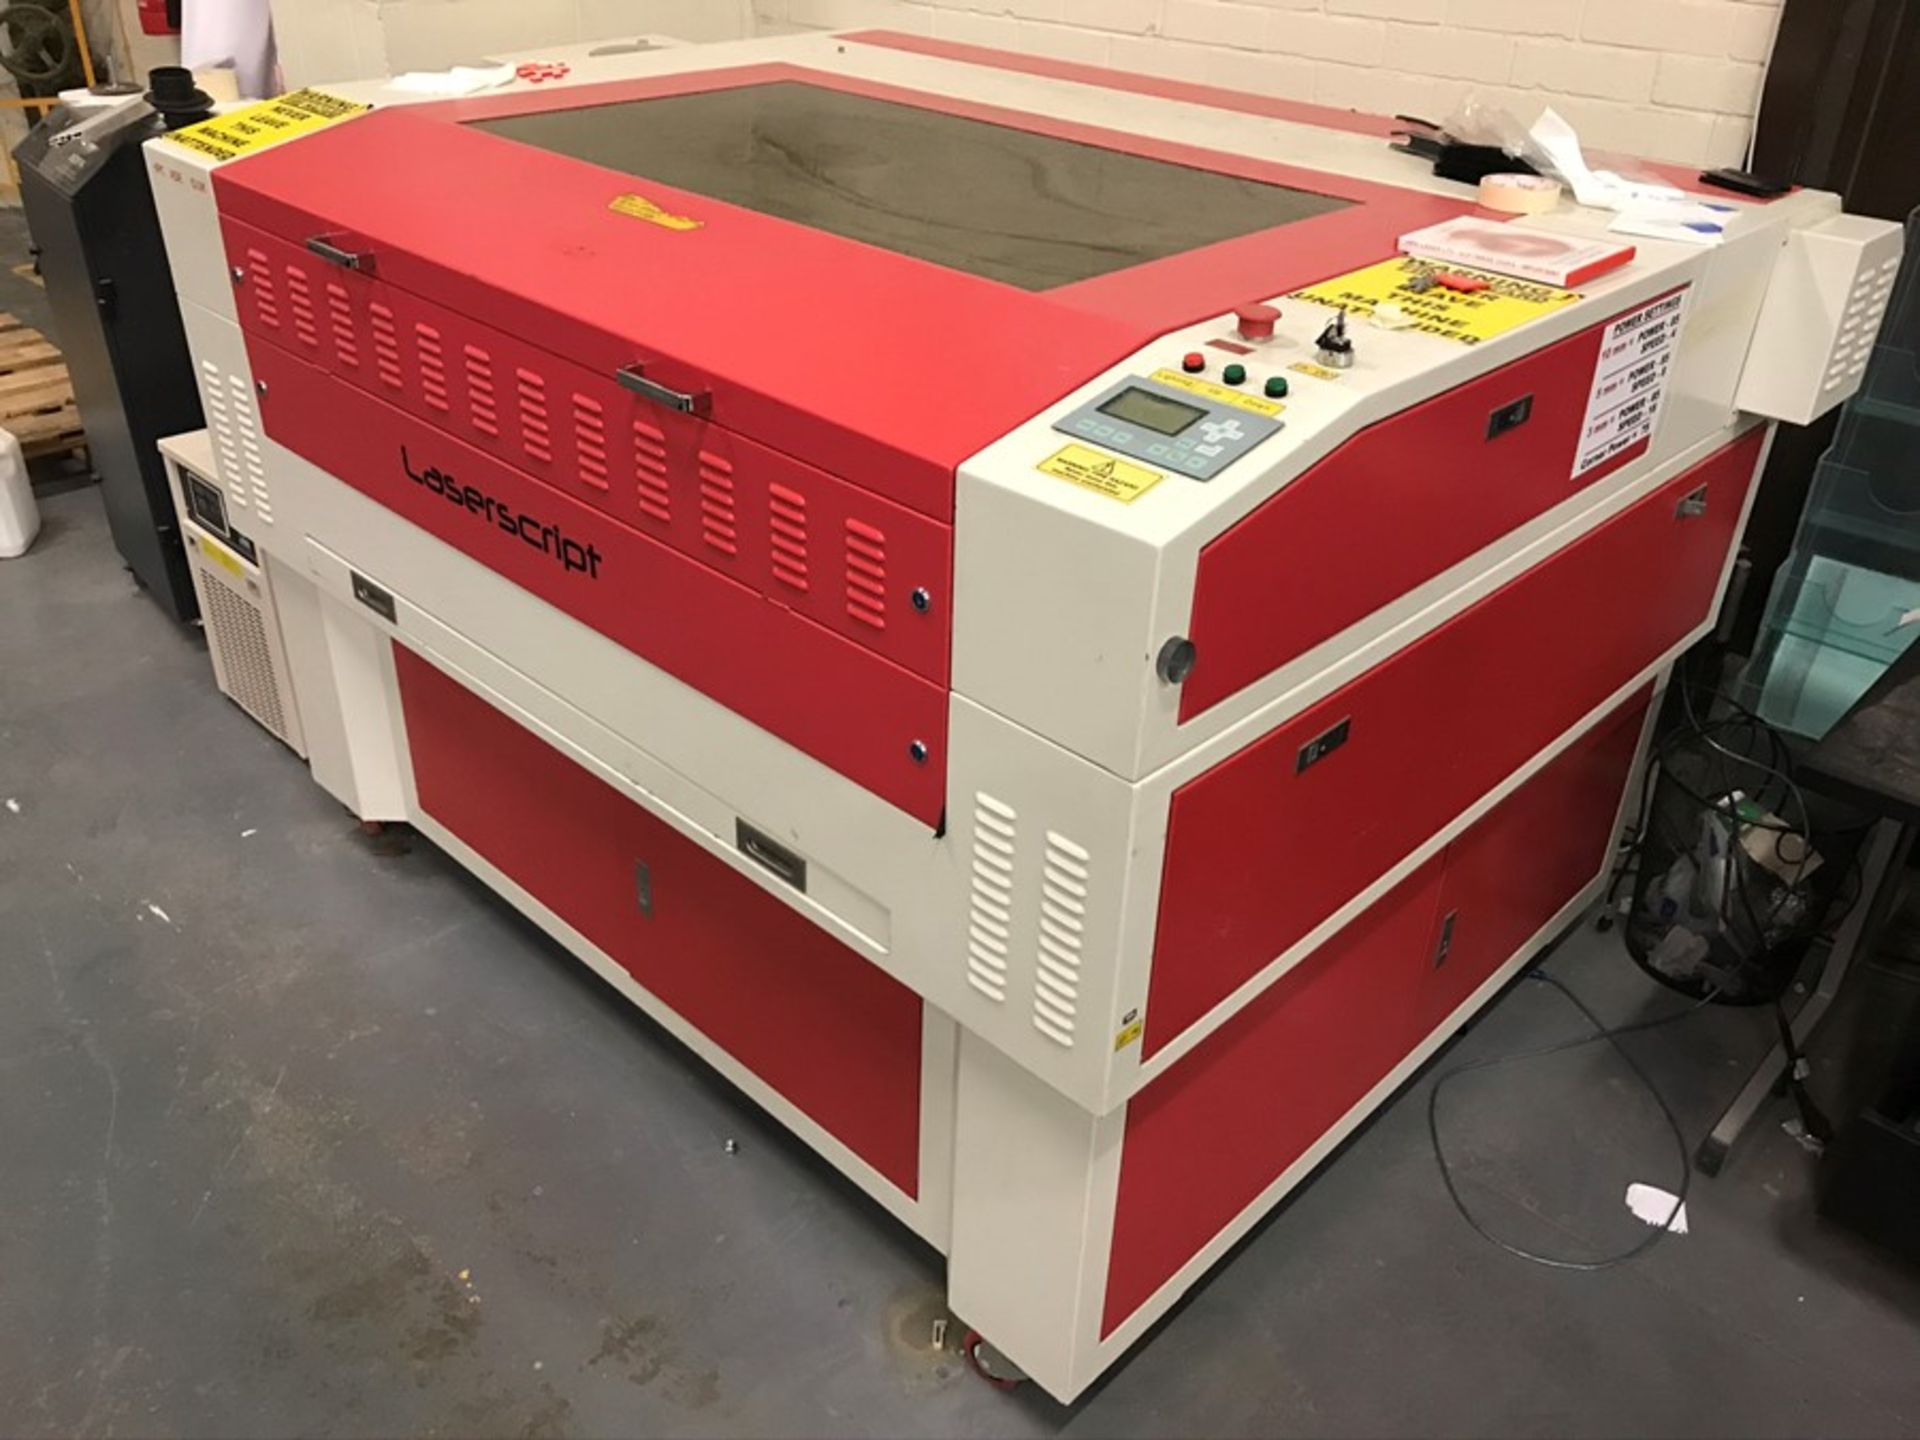 HPC Laser Ltd LS1290 Laserscript engraving machine - Image 2 of 18